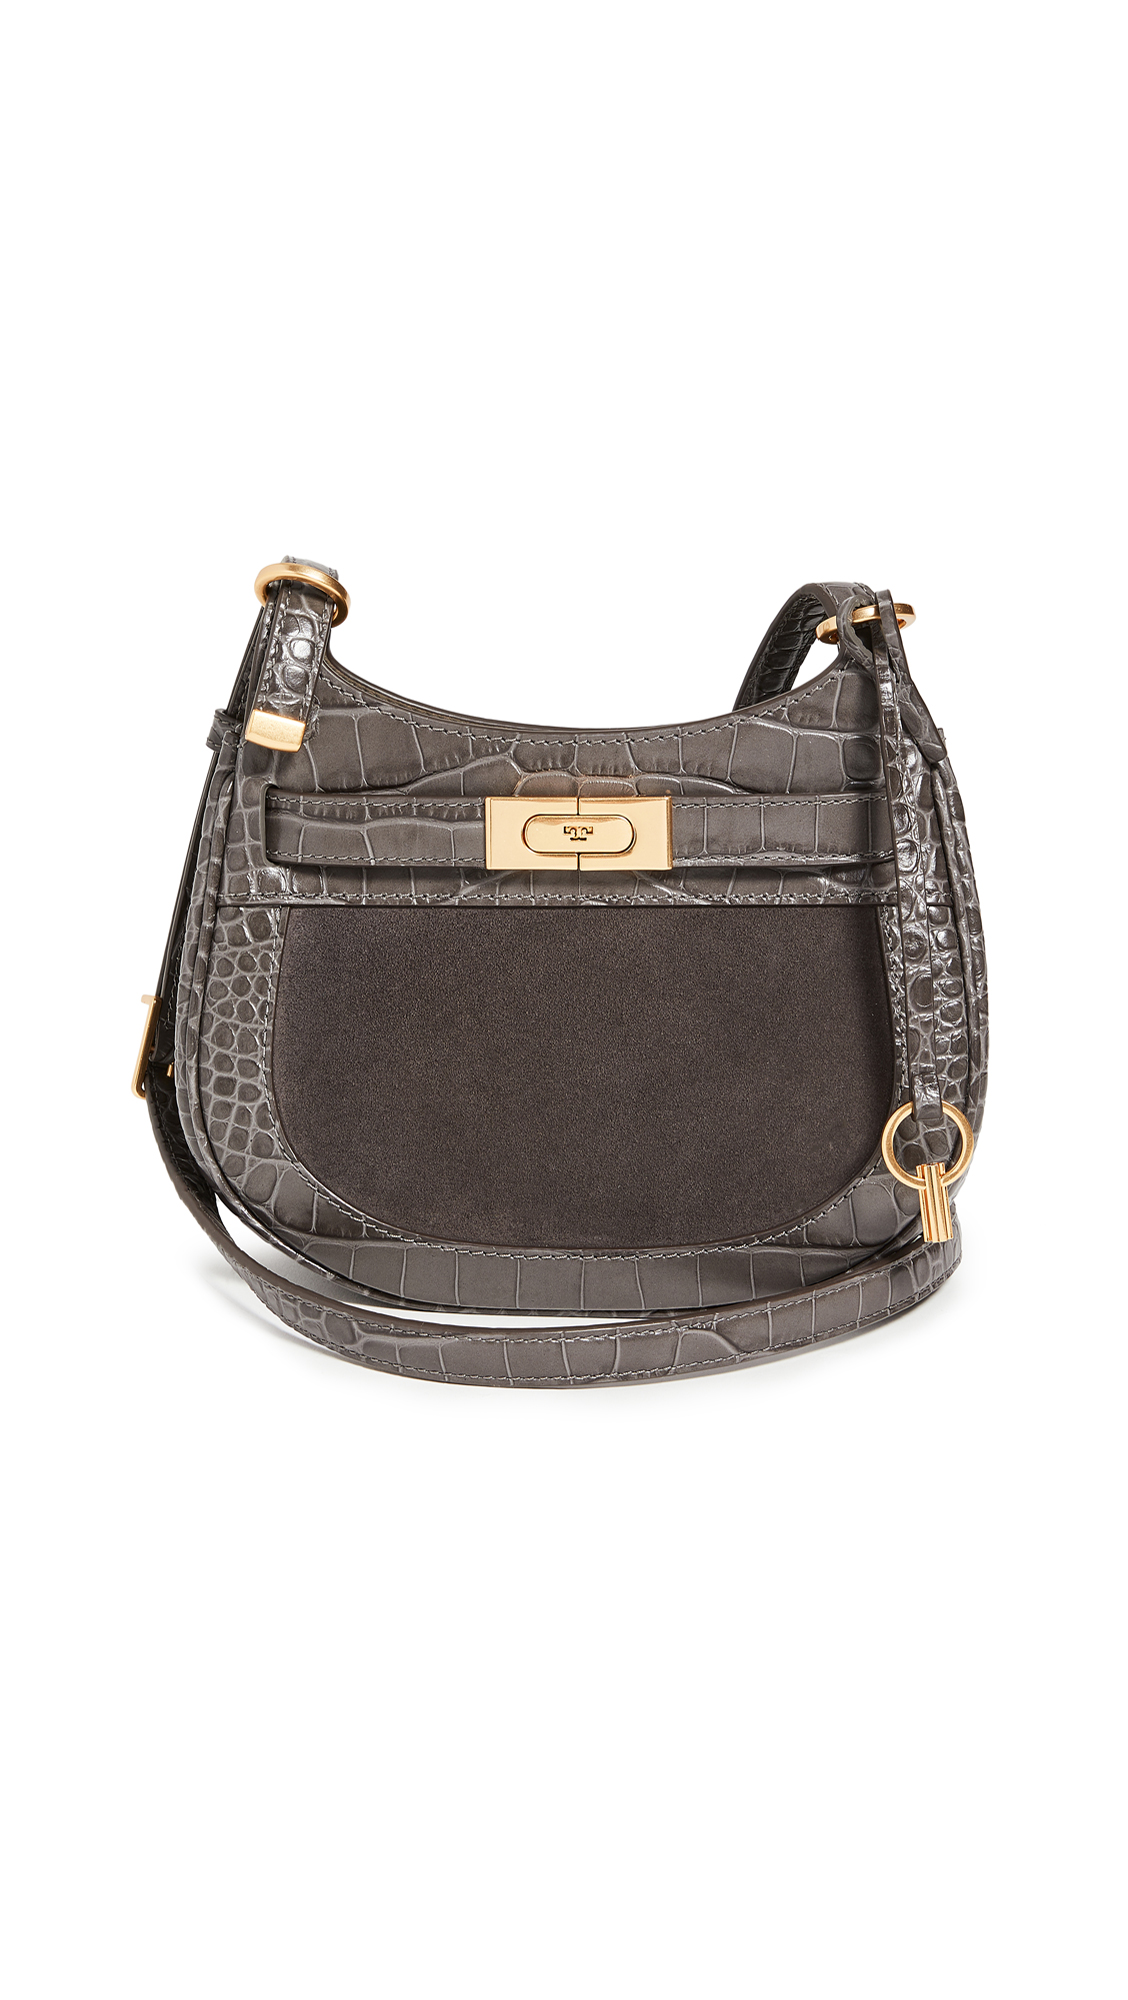 Tory Burch Lee Radziwill Embossed Frame Saddle Bag